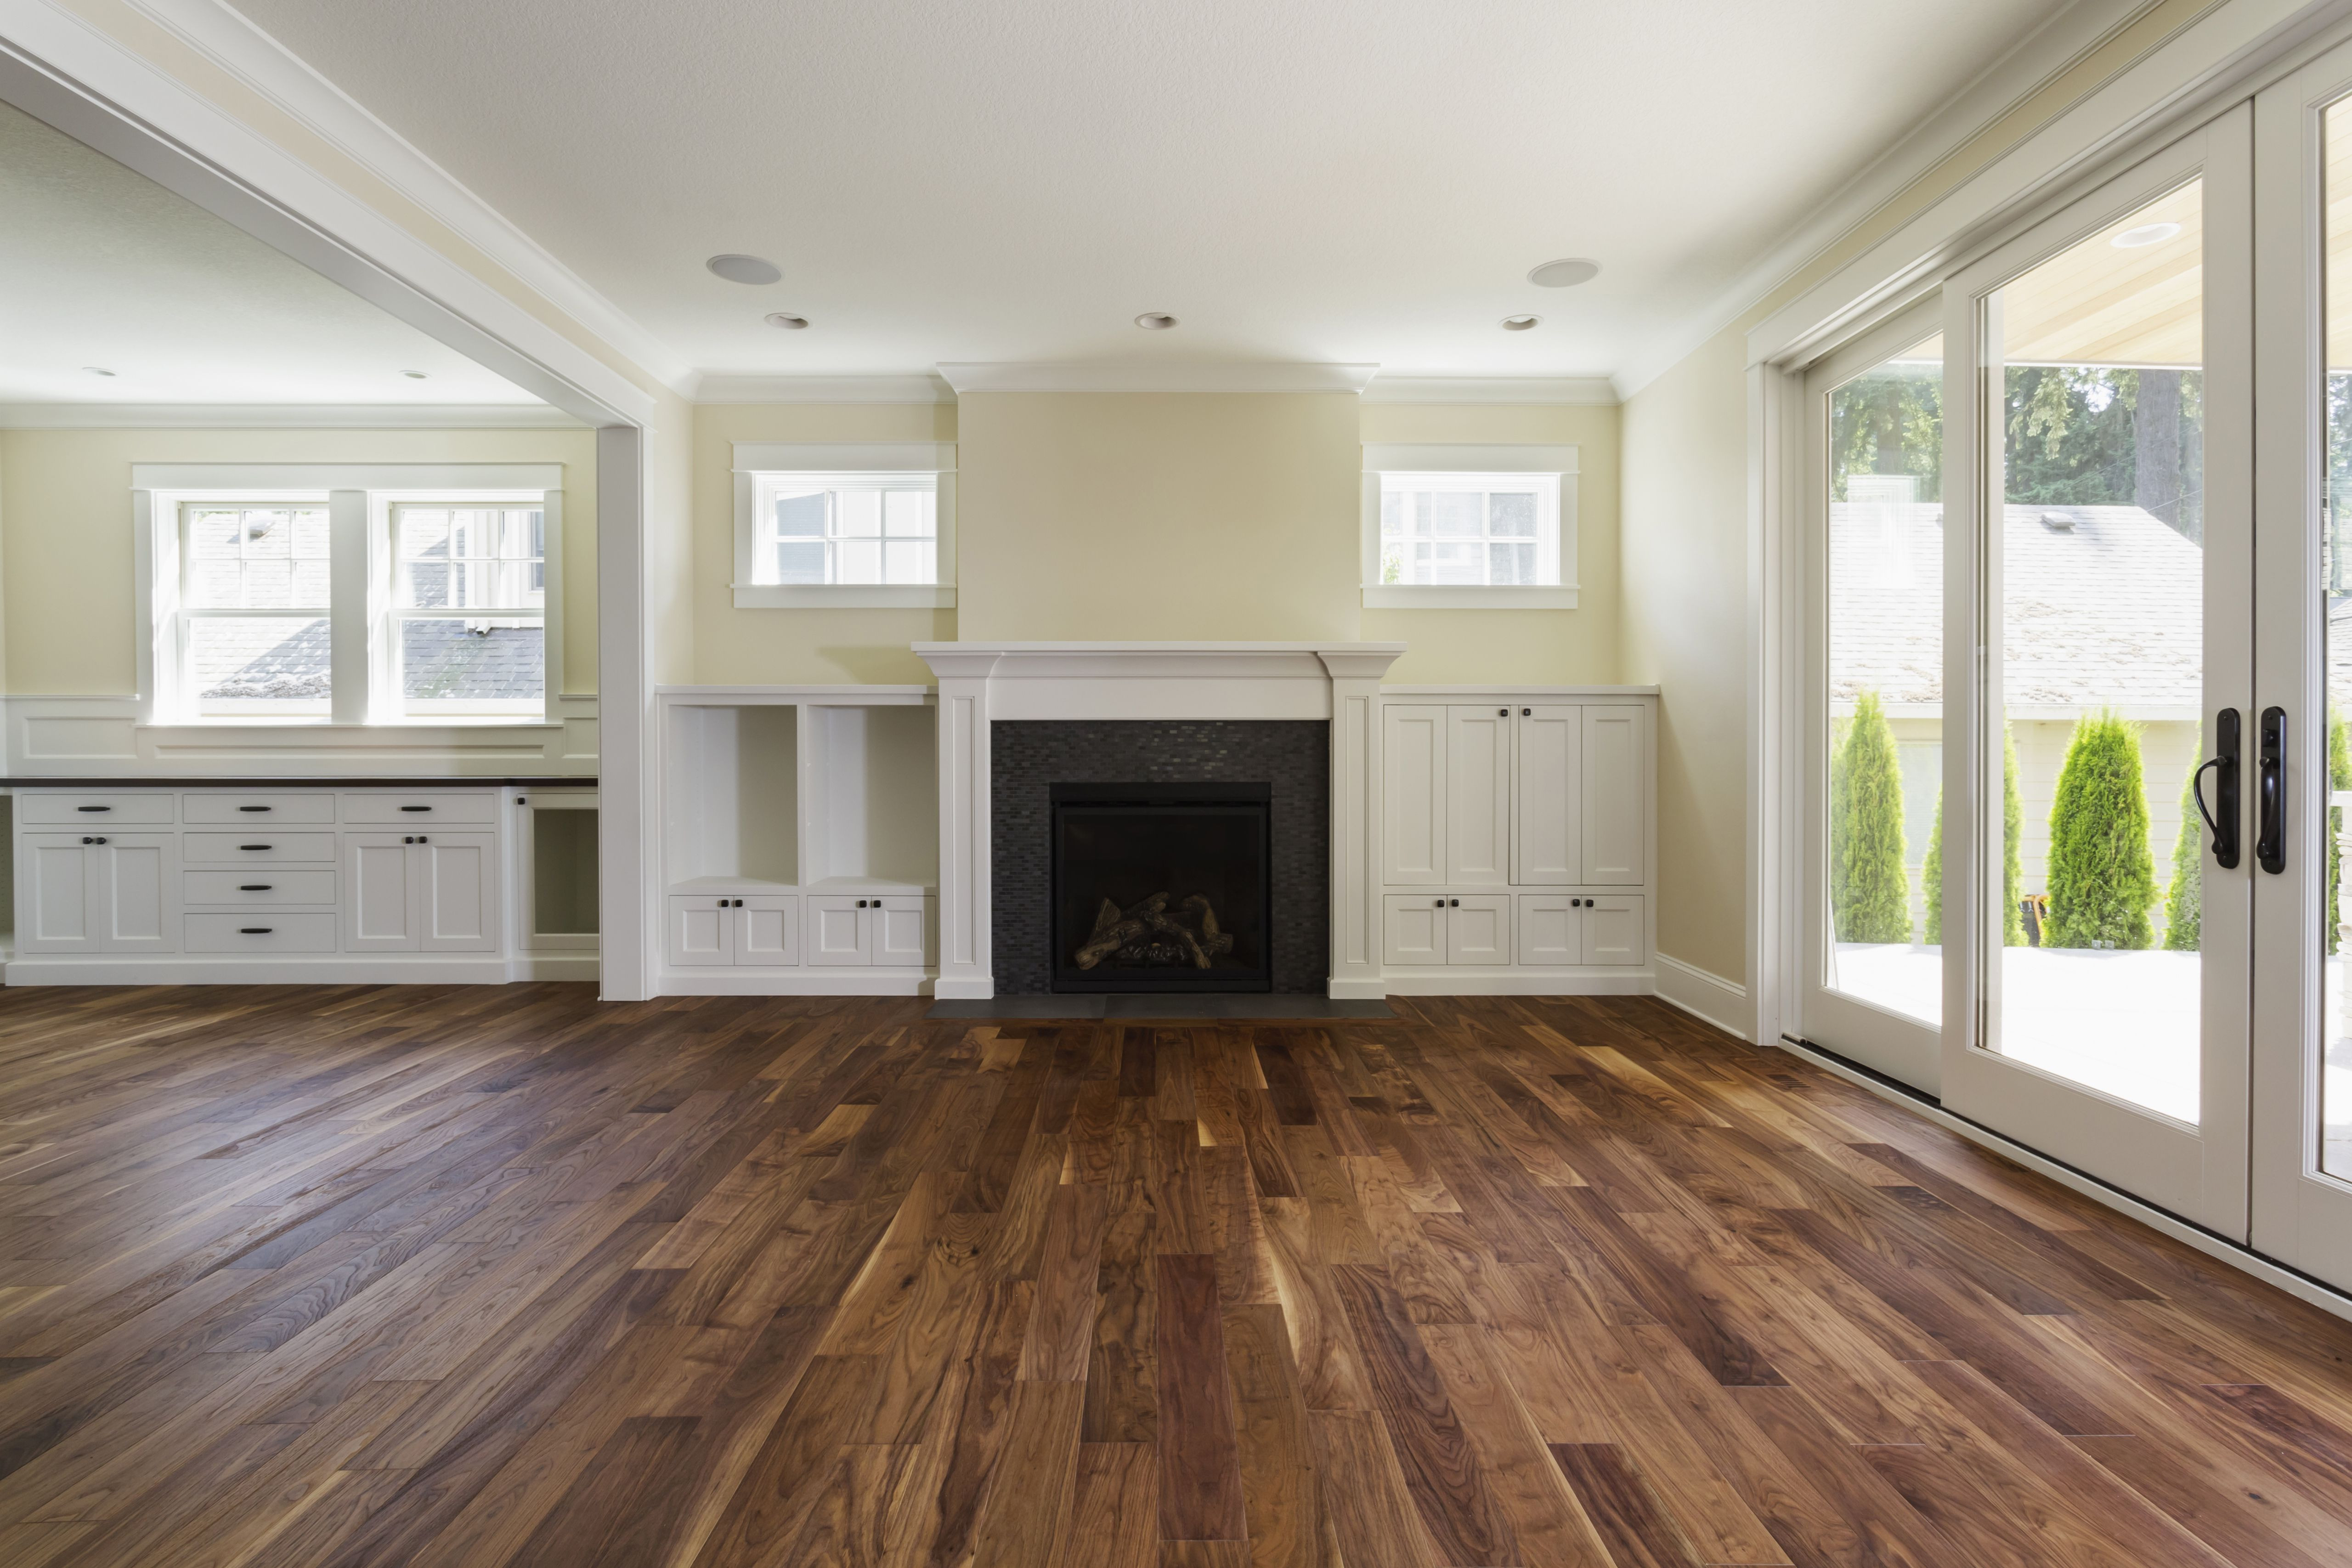 cheap hardwood flooring in georgia of the pros and cons of prefinished hardwood flooring in fireplace and built in shelves in living room 482143011 57bef8e33df78cc16e035397